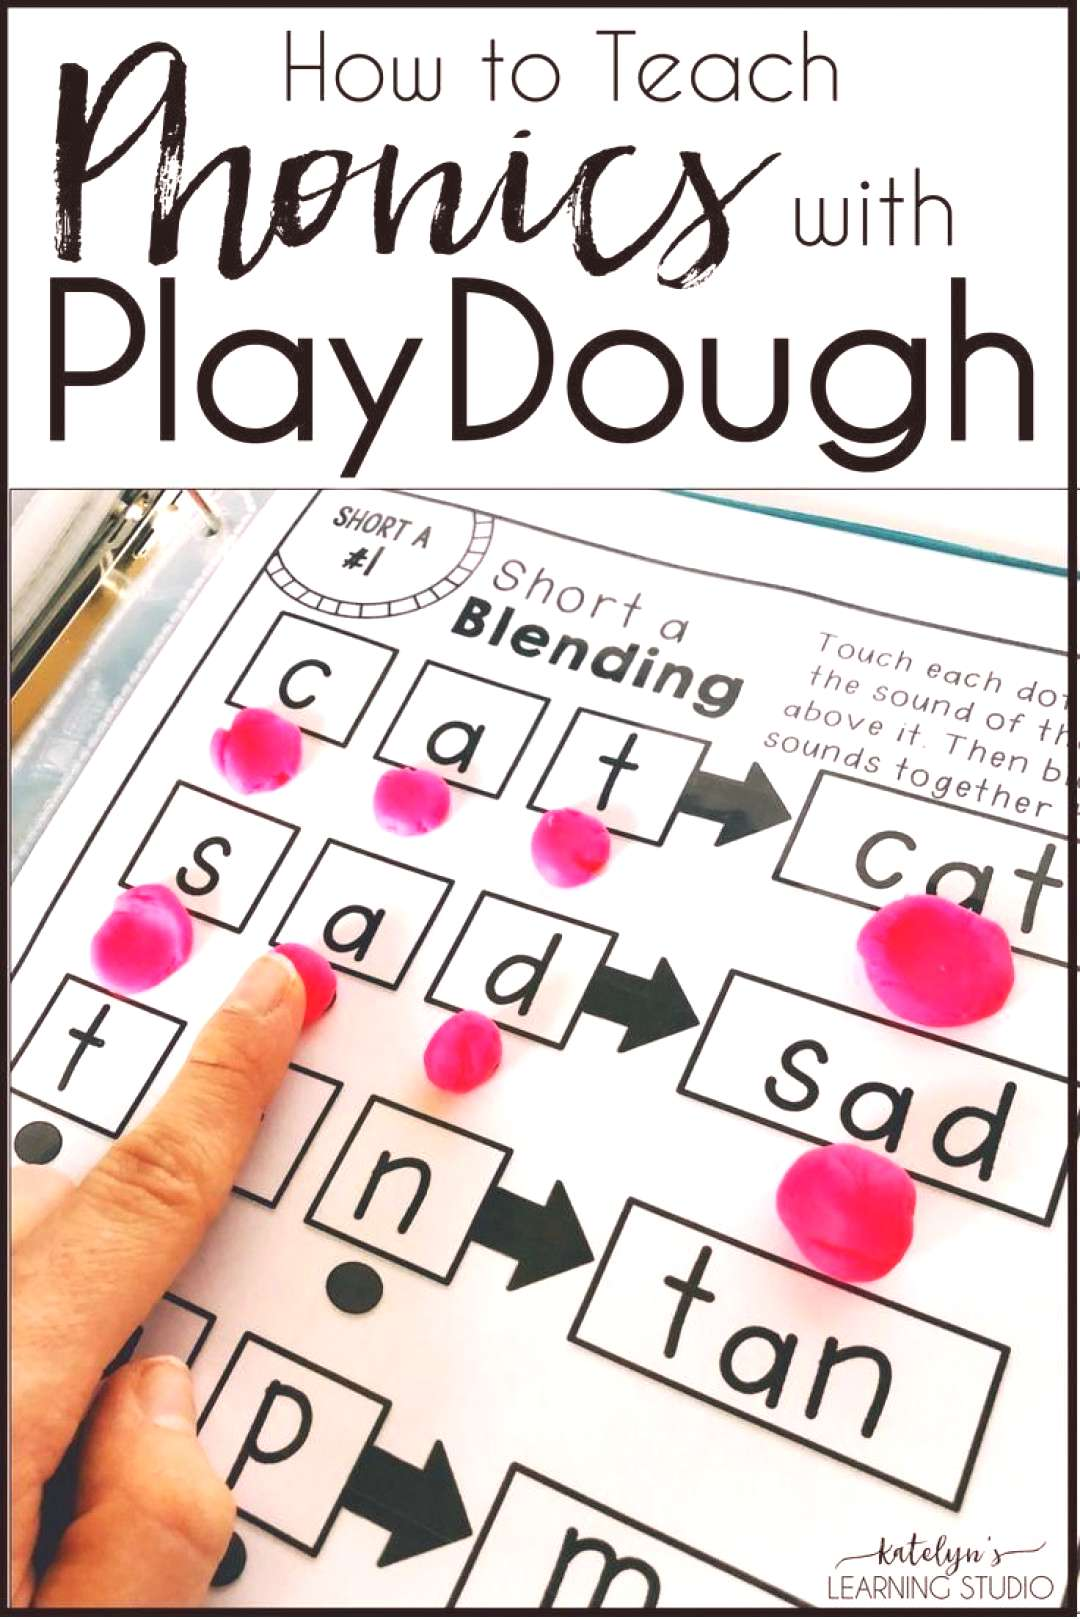 Make learning phonics rules fun with these engaging lesson and activities ideas. Classroom teachers